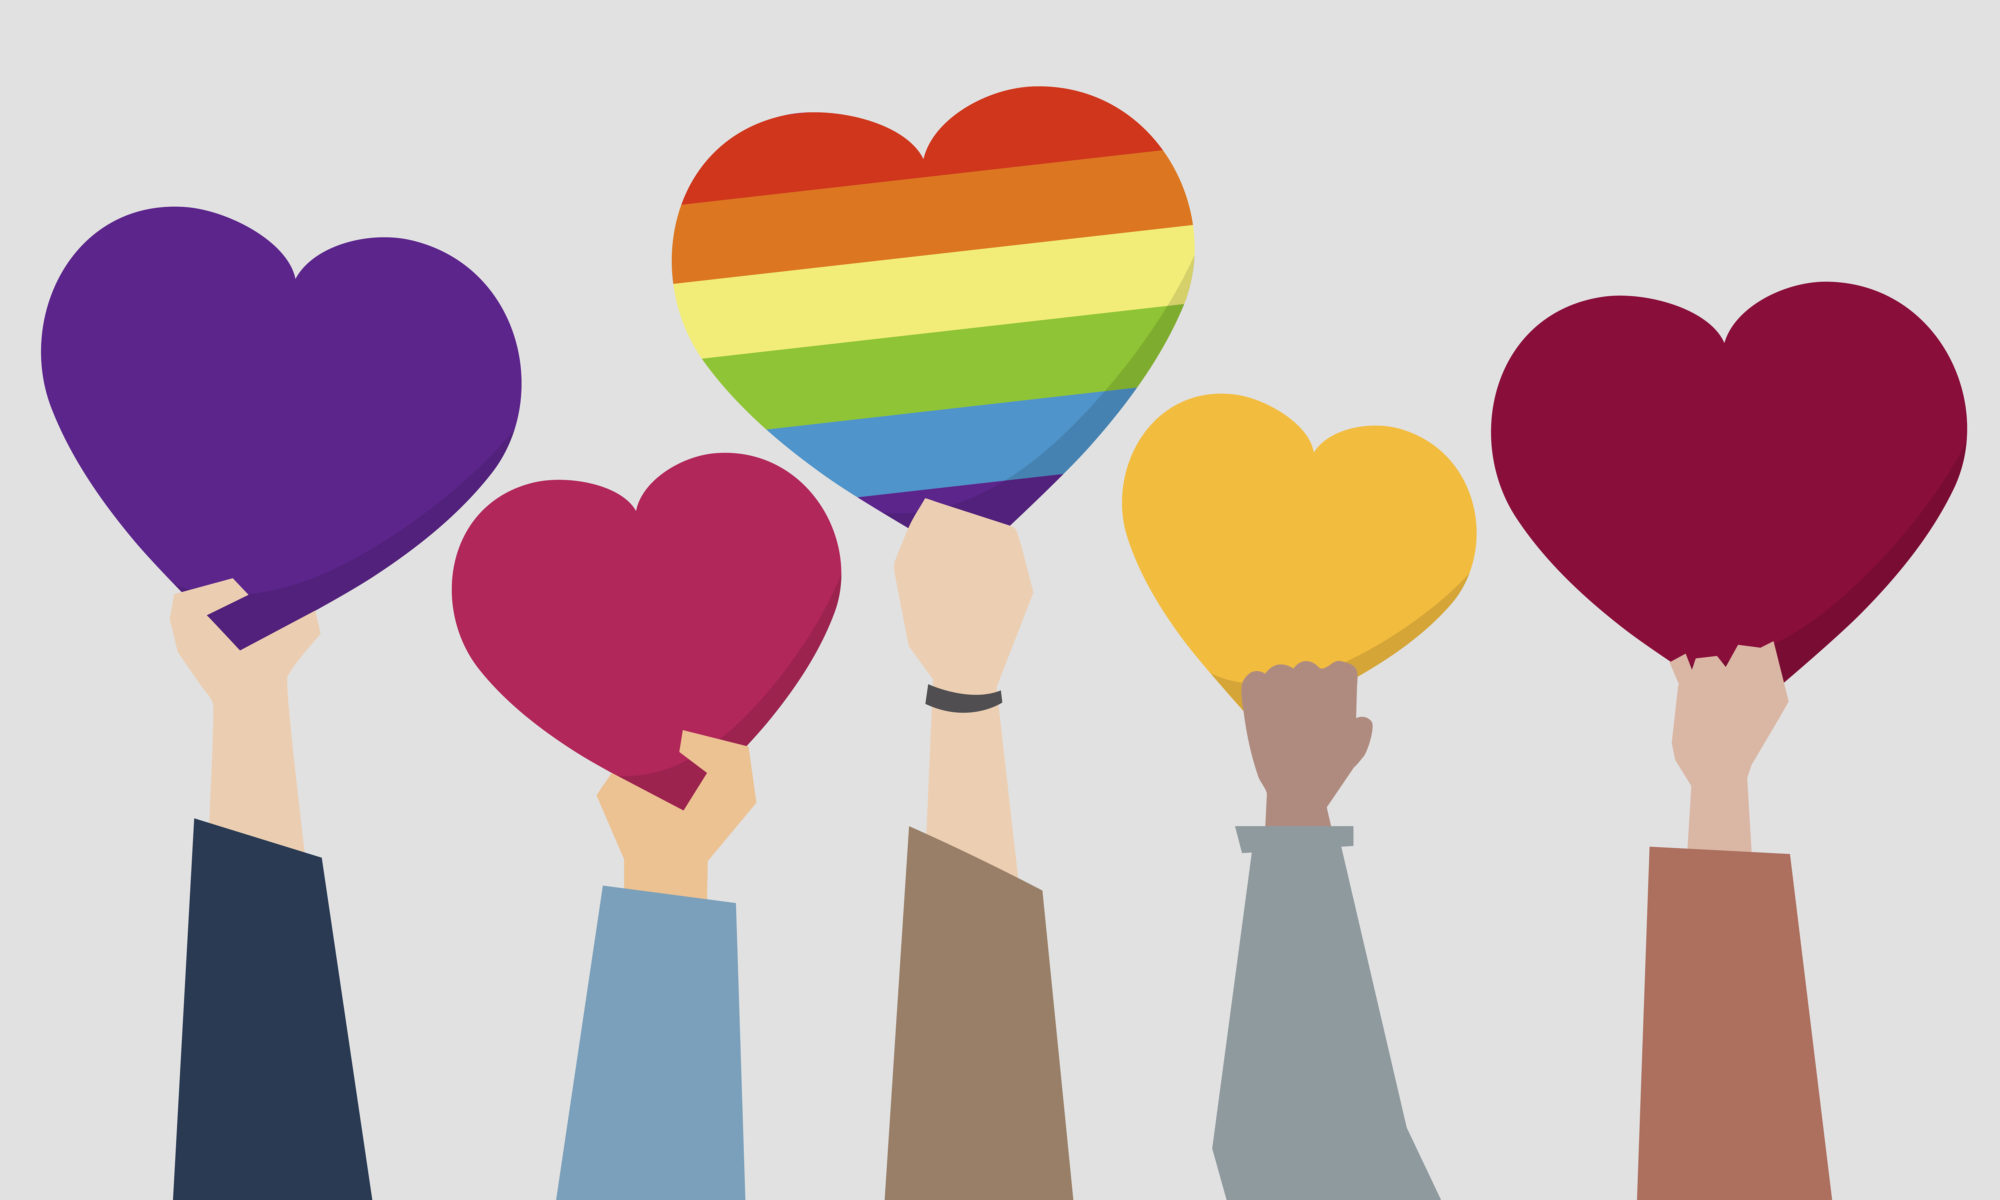 A digital art image showing five arms and hands holding up hearts in different colours. The middle heart is rainbow-coloured.